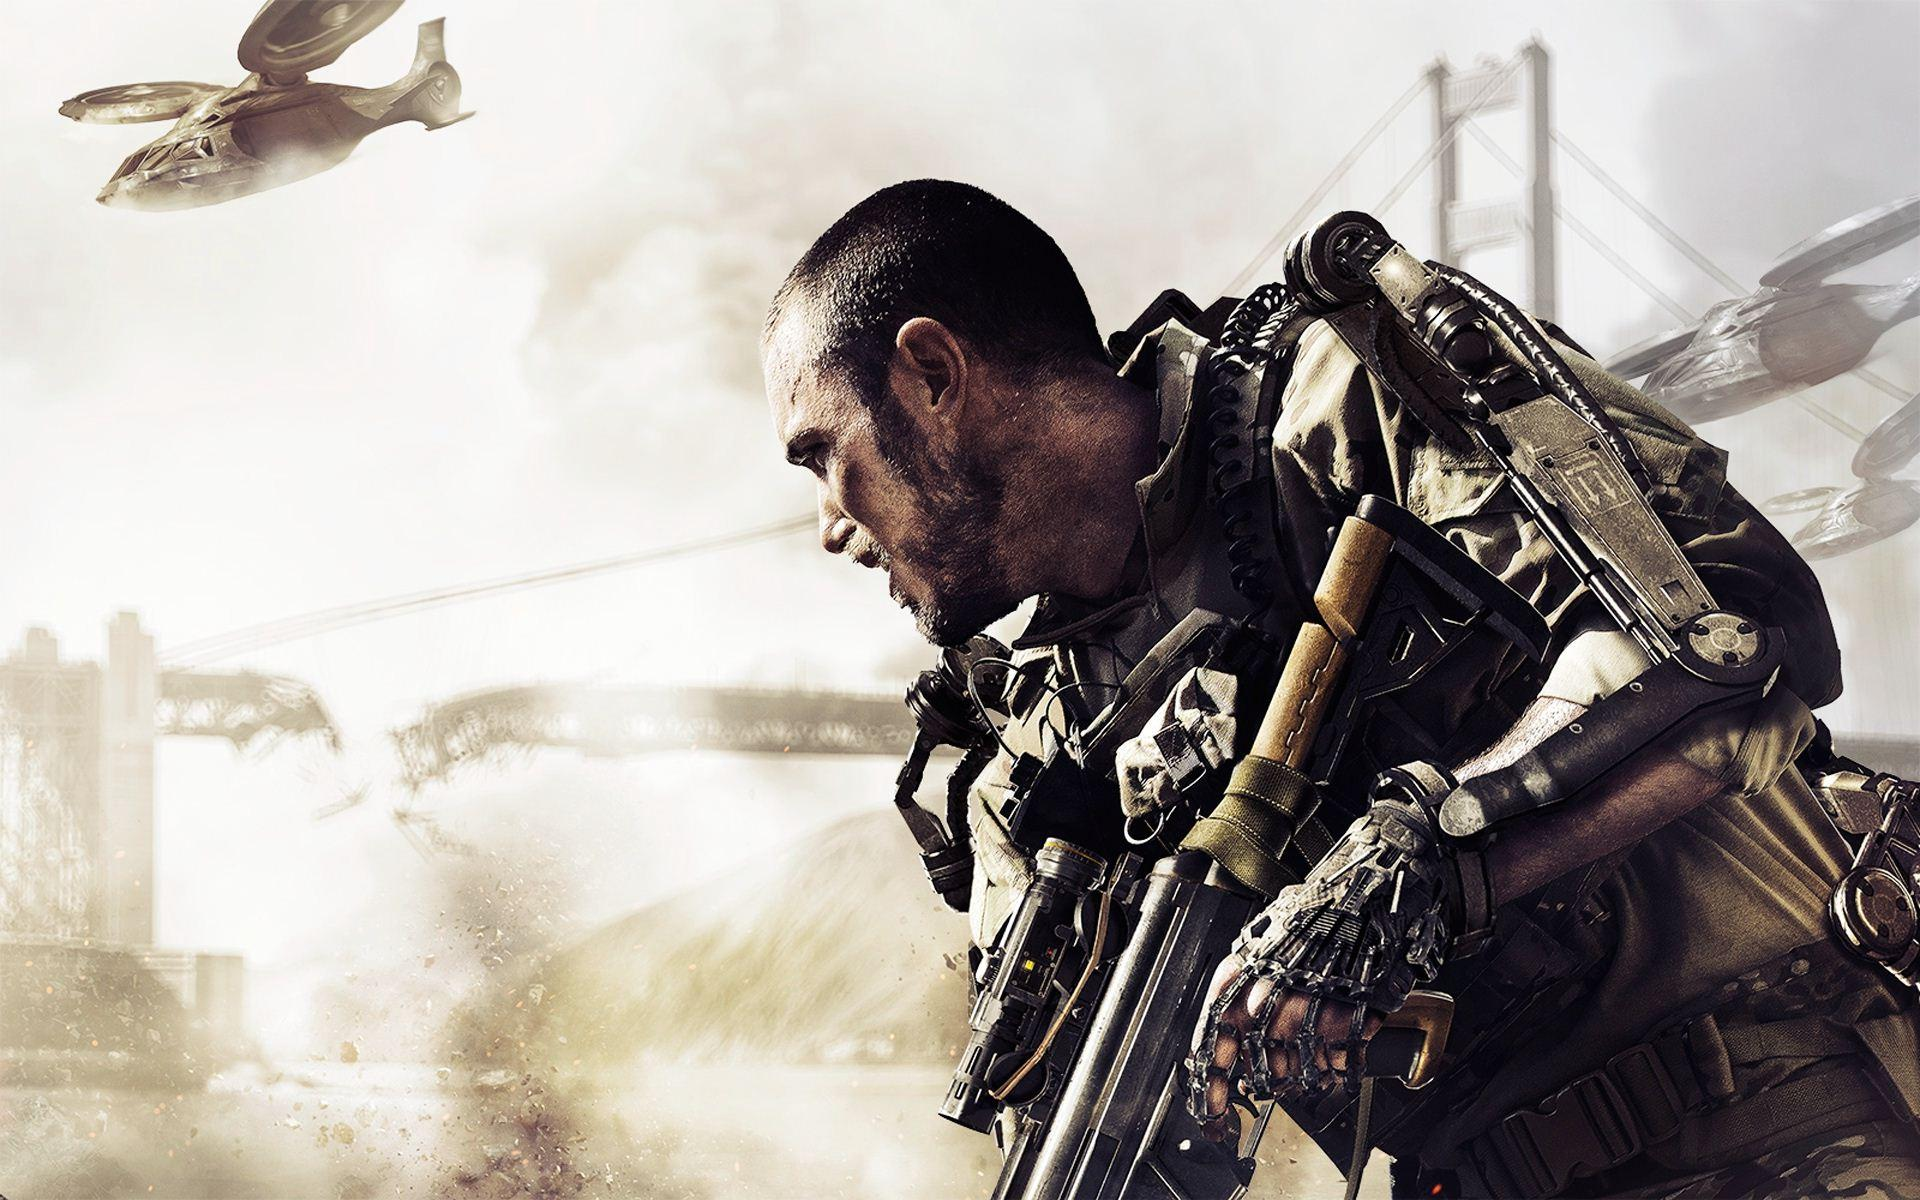 Call Of Duty: Advanced Warfare PS4 Wallpapers - PS4 Home